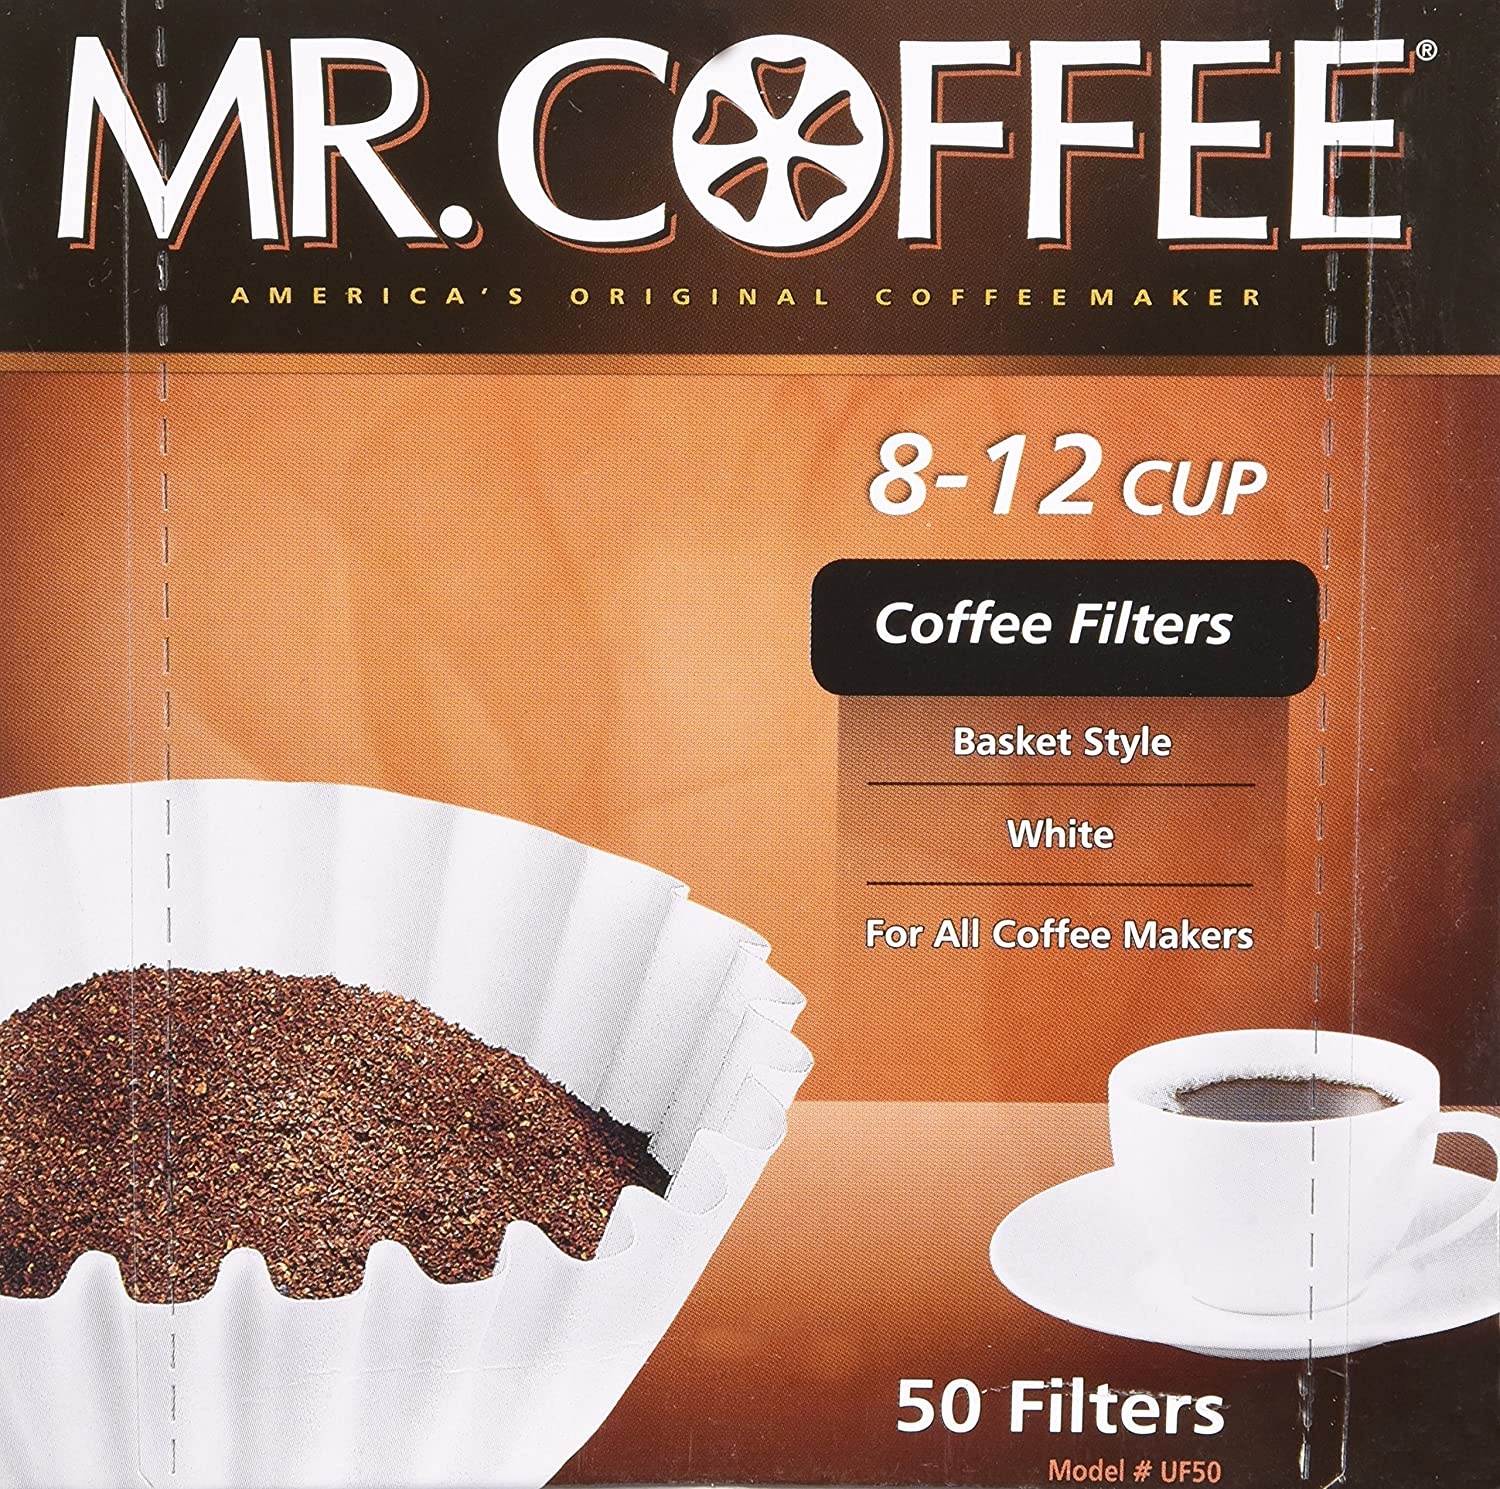 Mr Coffee 8-12 Cup Coffee Filters, 50 Filters Sunbeam Products UF50